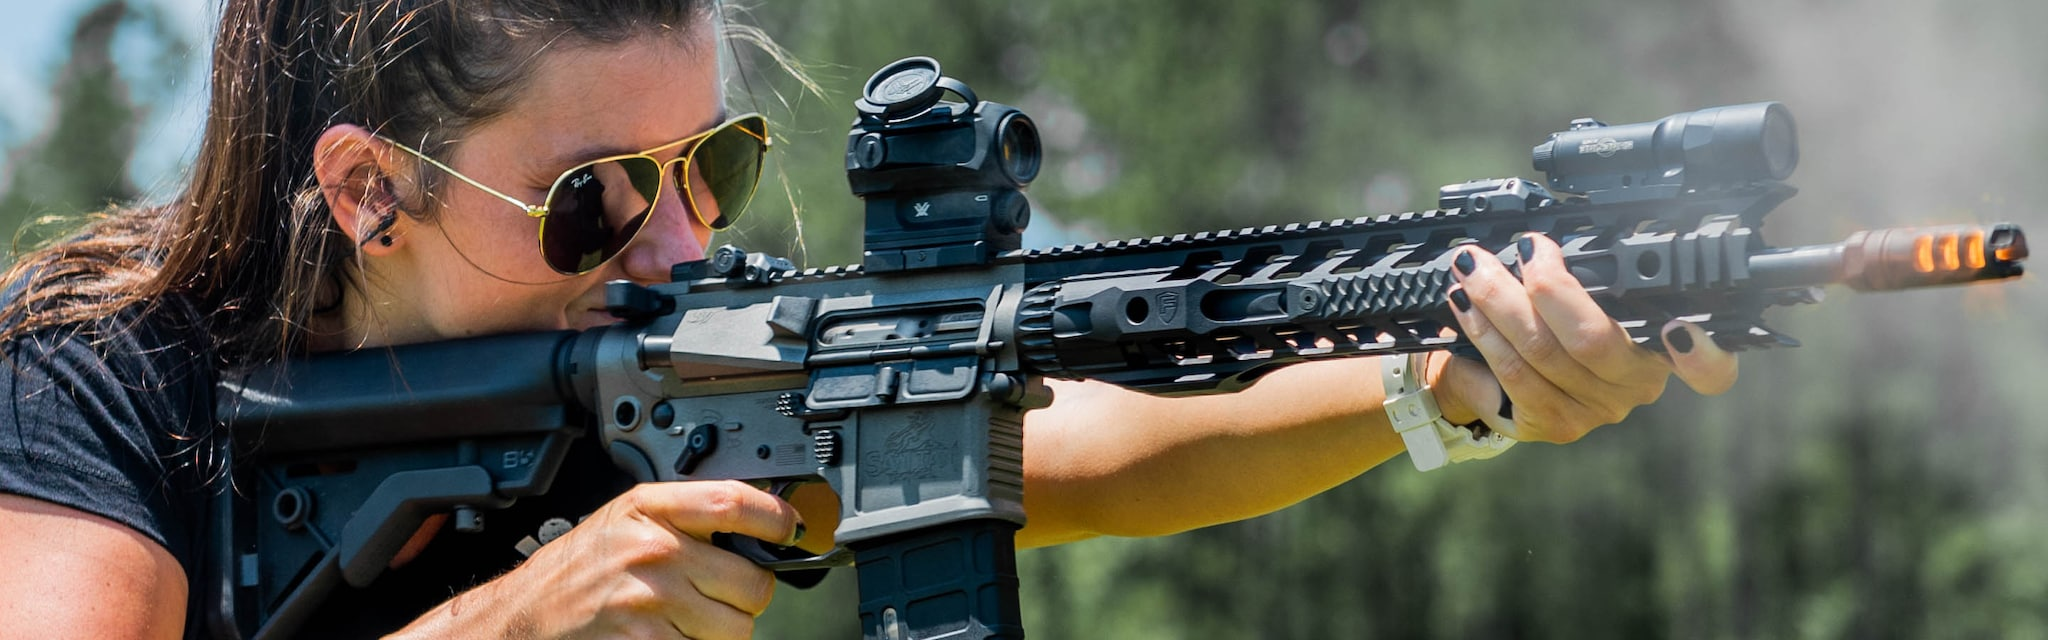 woman shooting ar-15